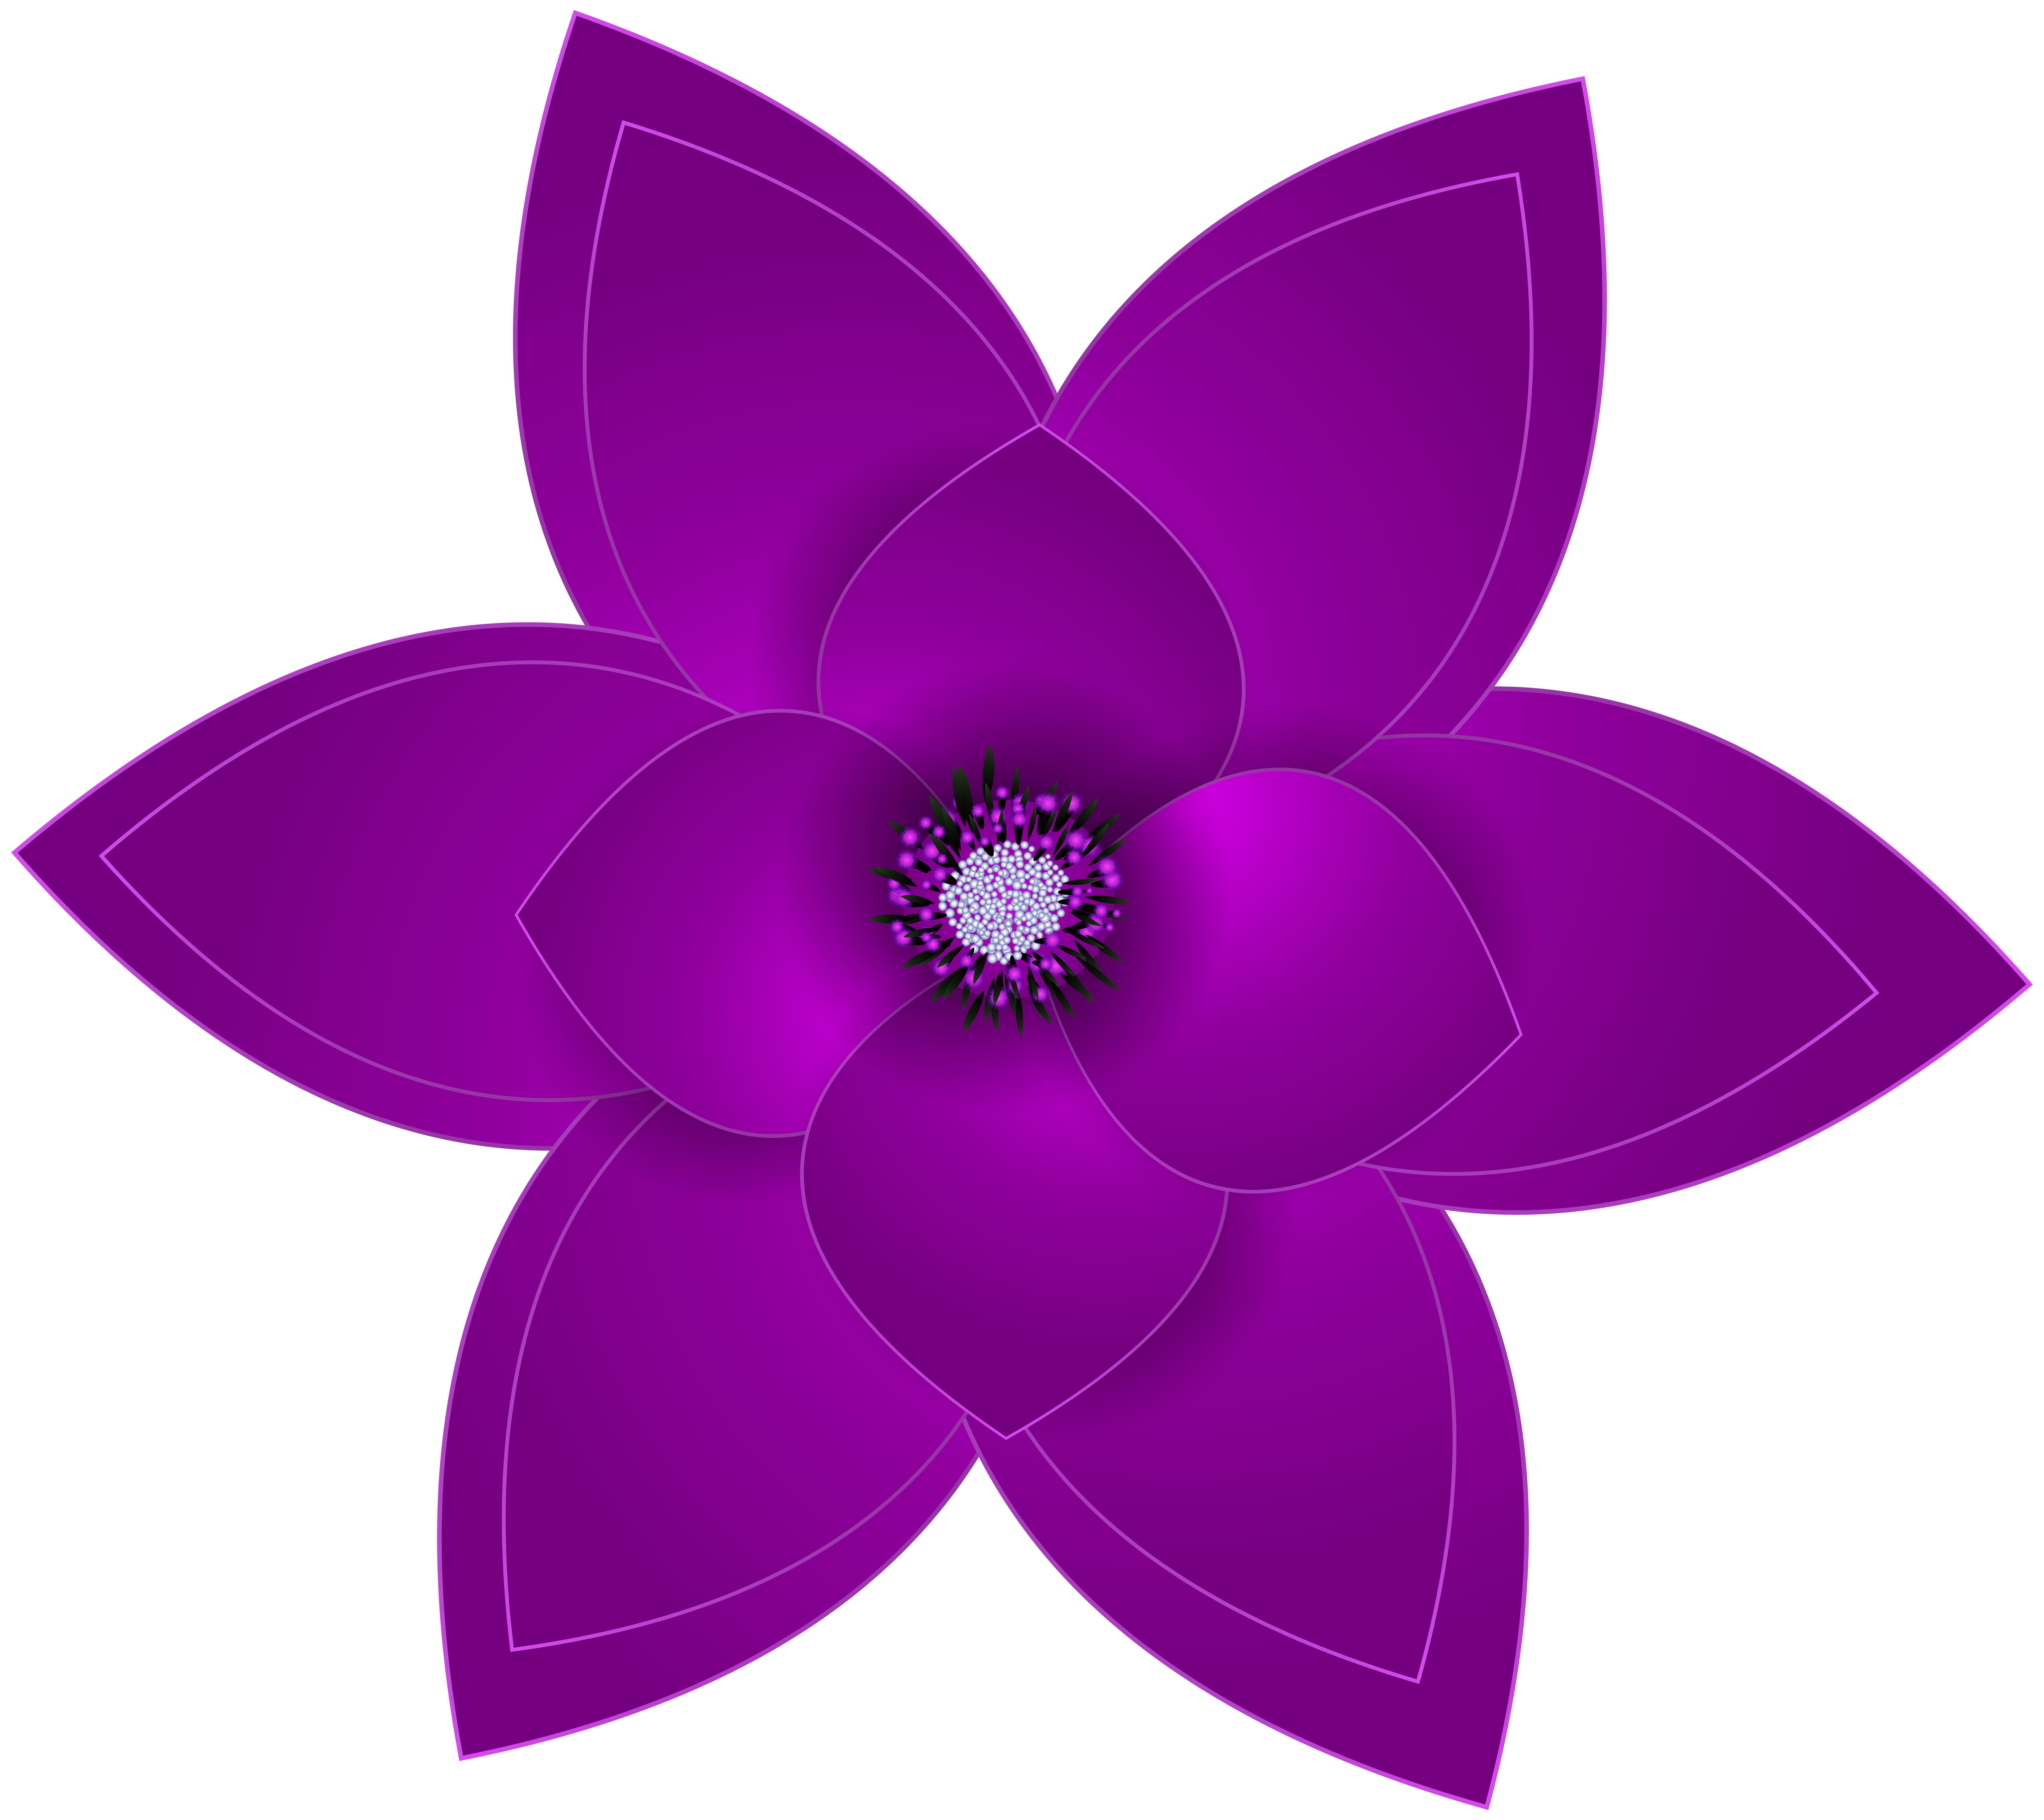 Violet images clipart clipart black and white download Purple Flowers Clipart | Free download best Purple Flowers ... clipart black and white download